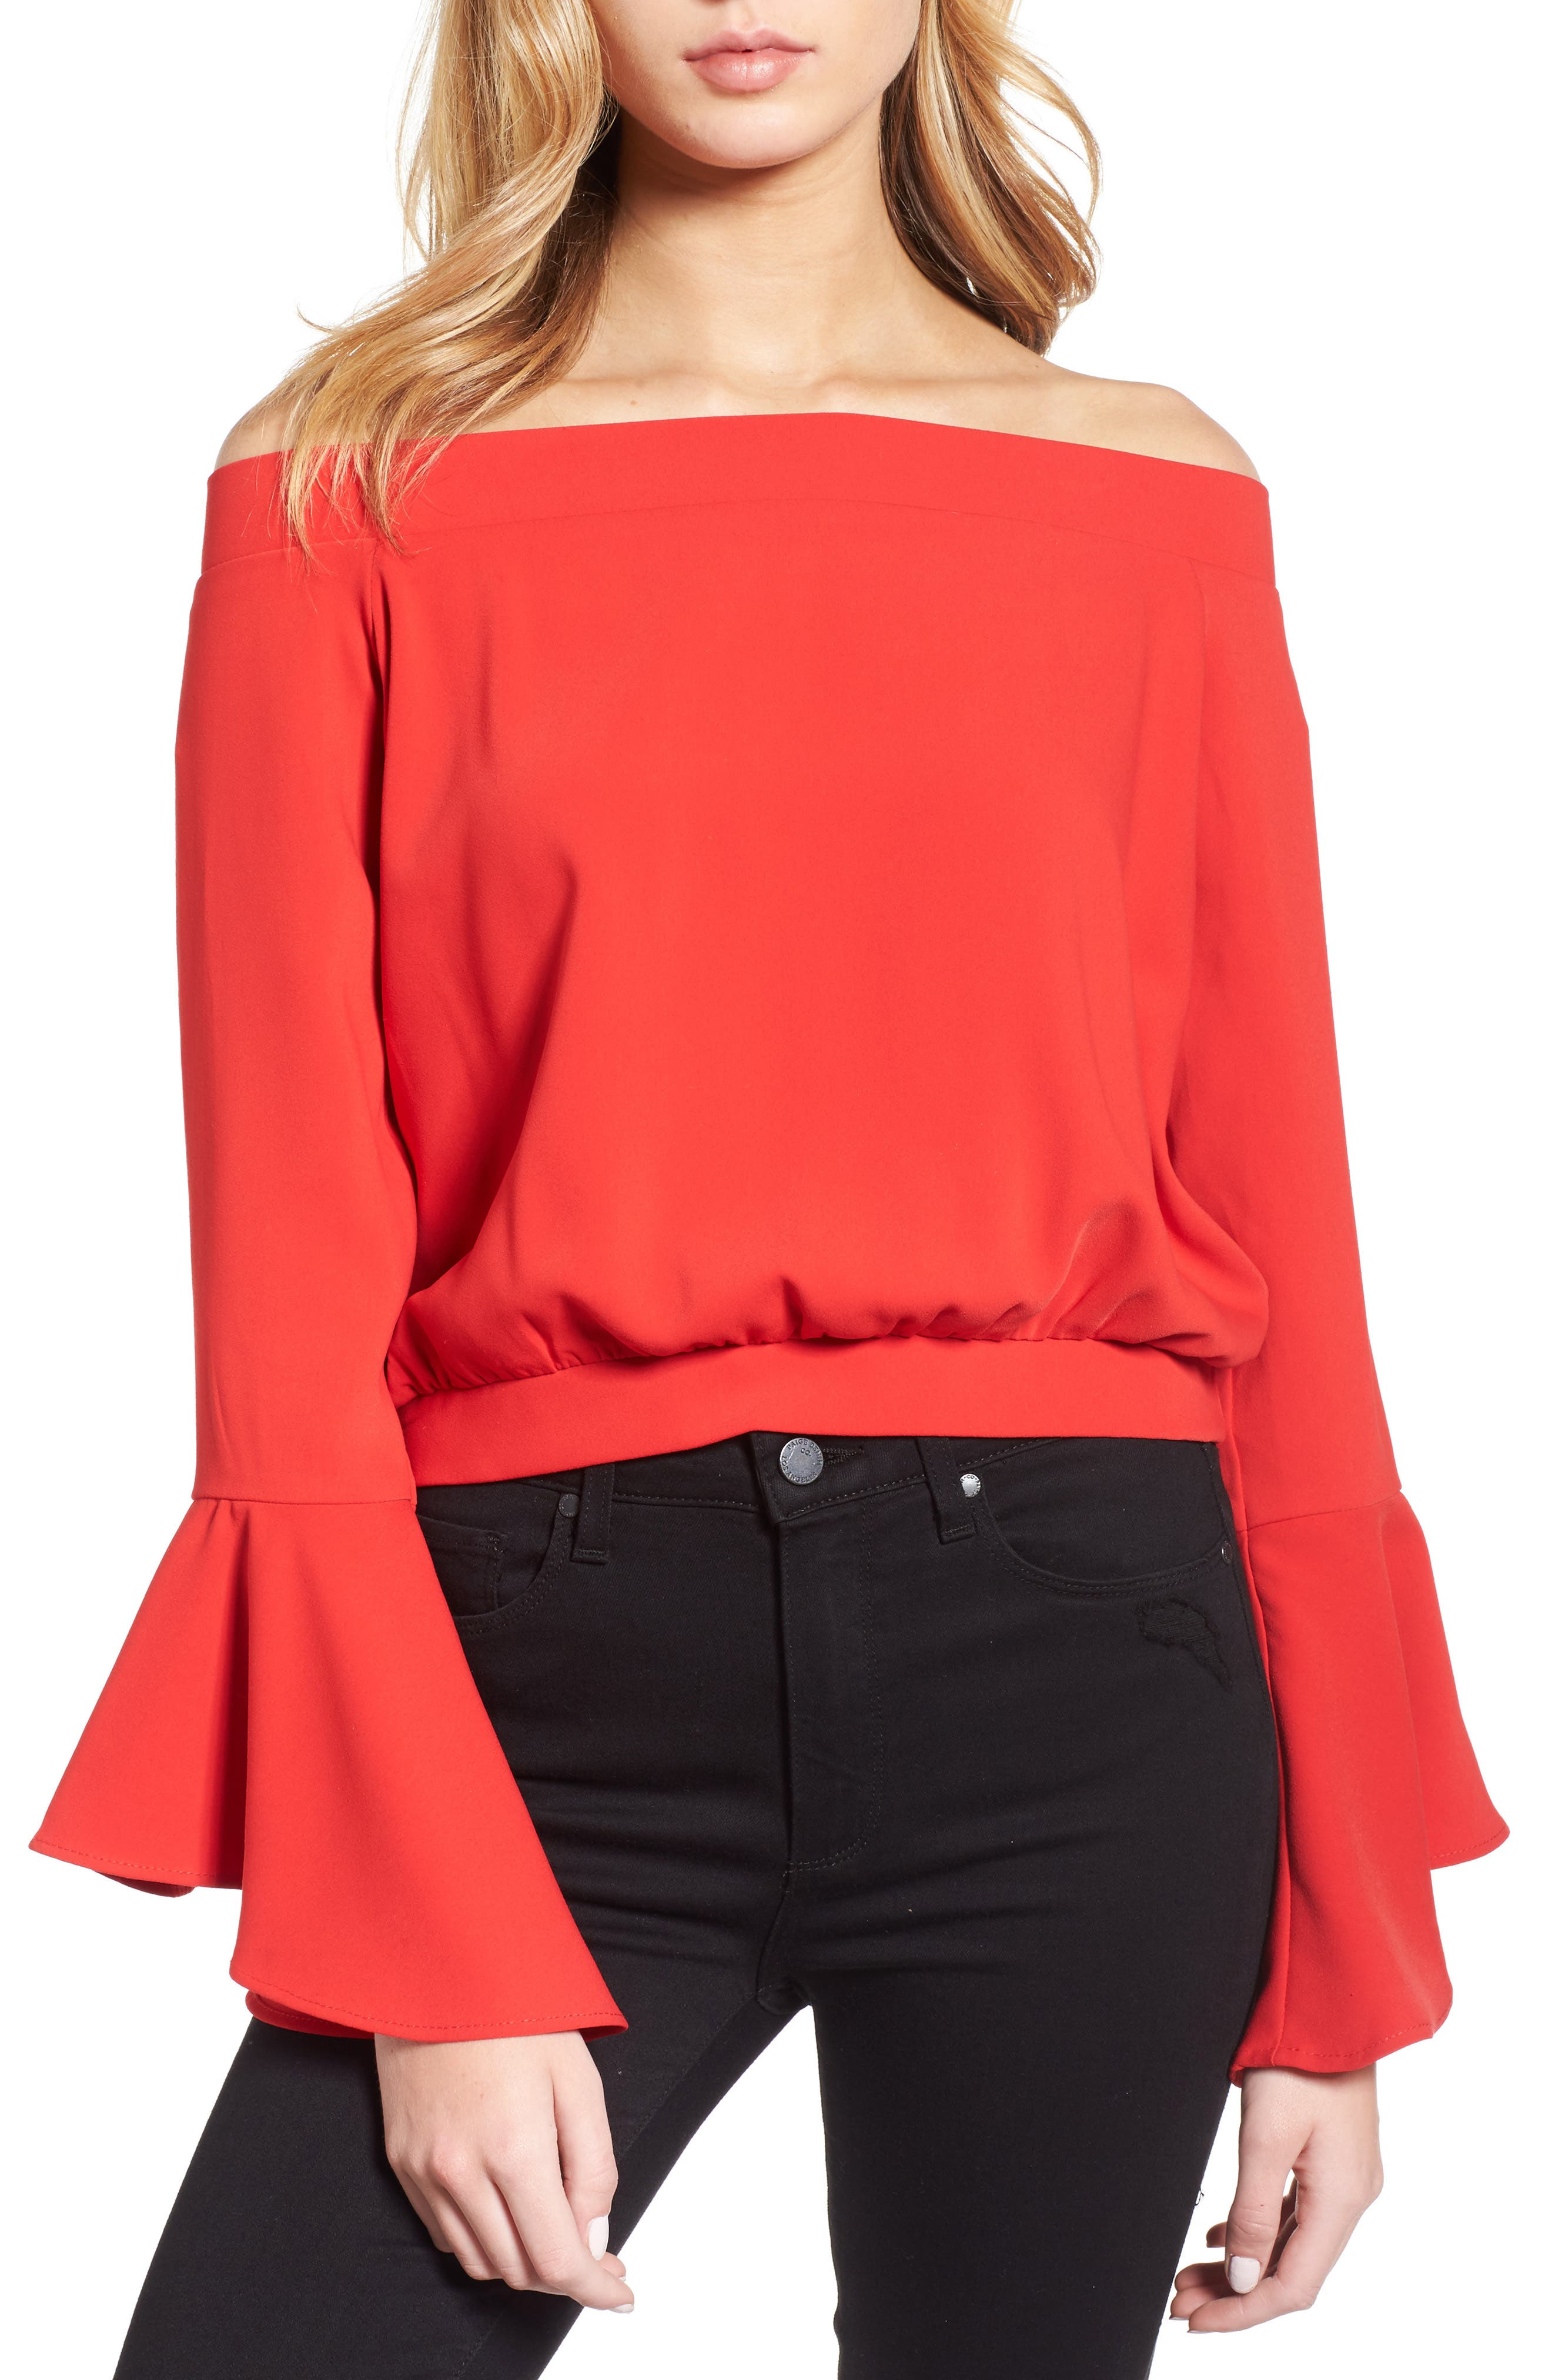 Elson Off the Shoulder Top,                             Main thumbnail 1, color,                             620